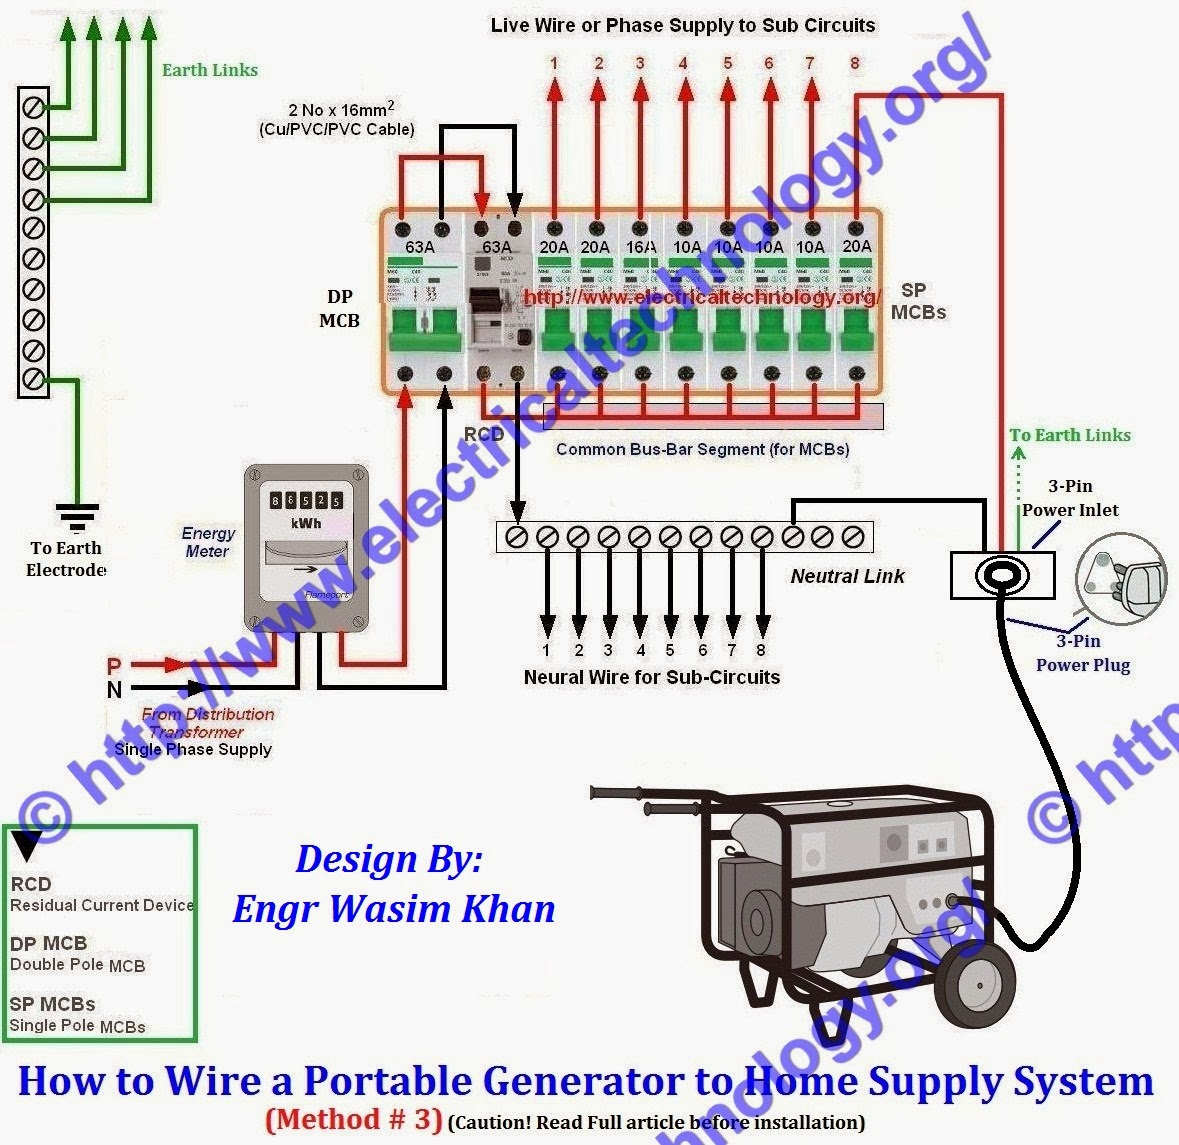 Connecting+the+Generator+to+the+3 Pin+Power+wall+socket+in+home+you+have+already+installed wiring diagrams for electrical receptacle outlets do it yourself 220 volt generator wiring diagram at et-consult.org